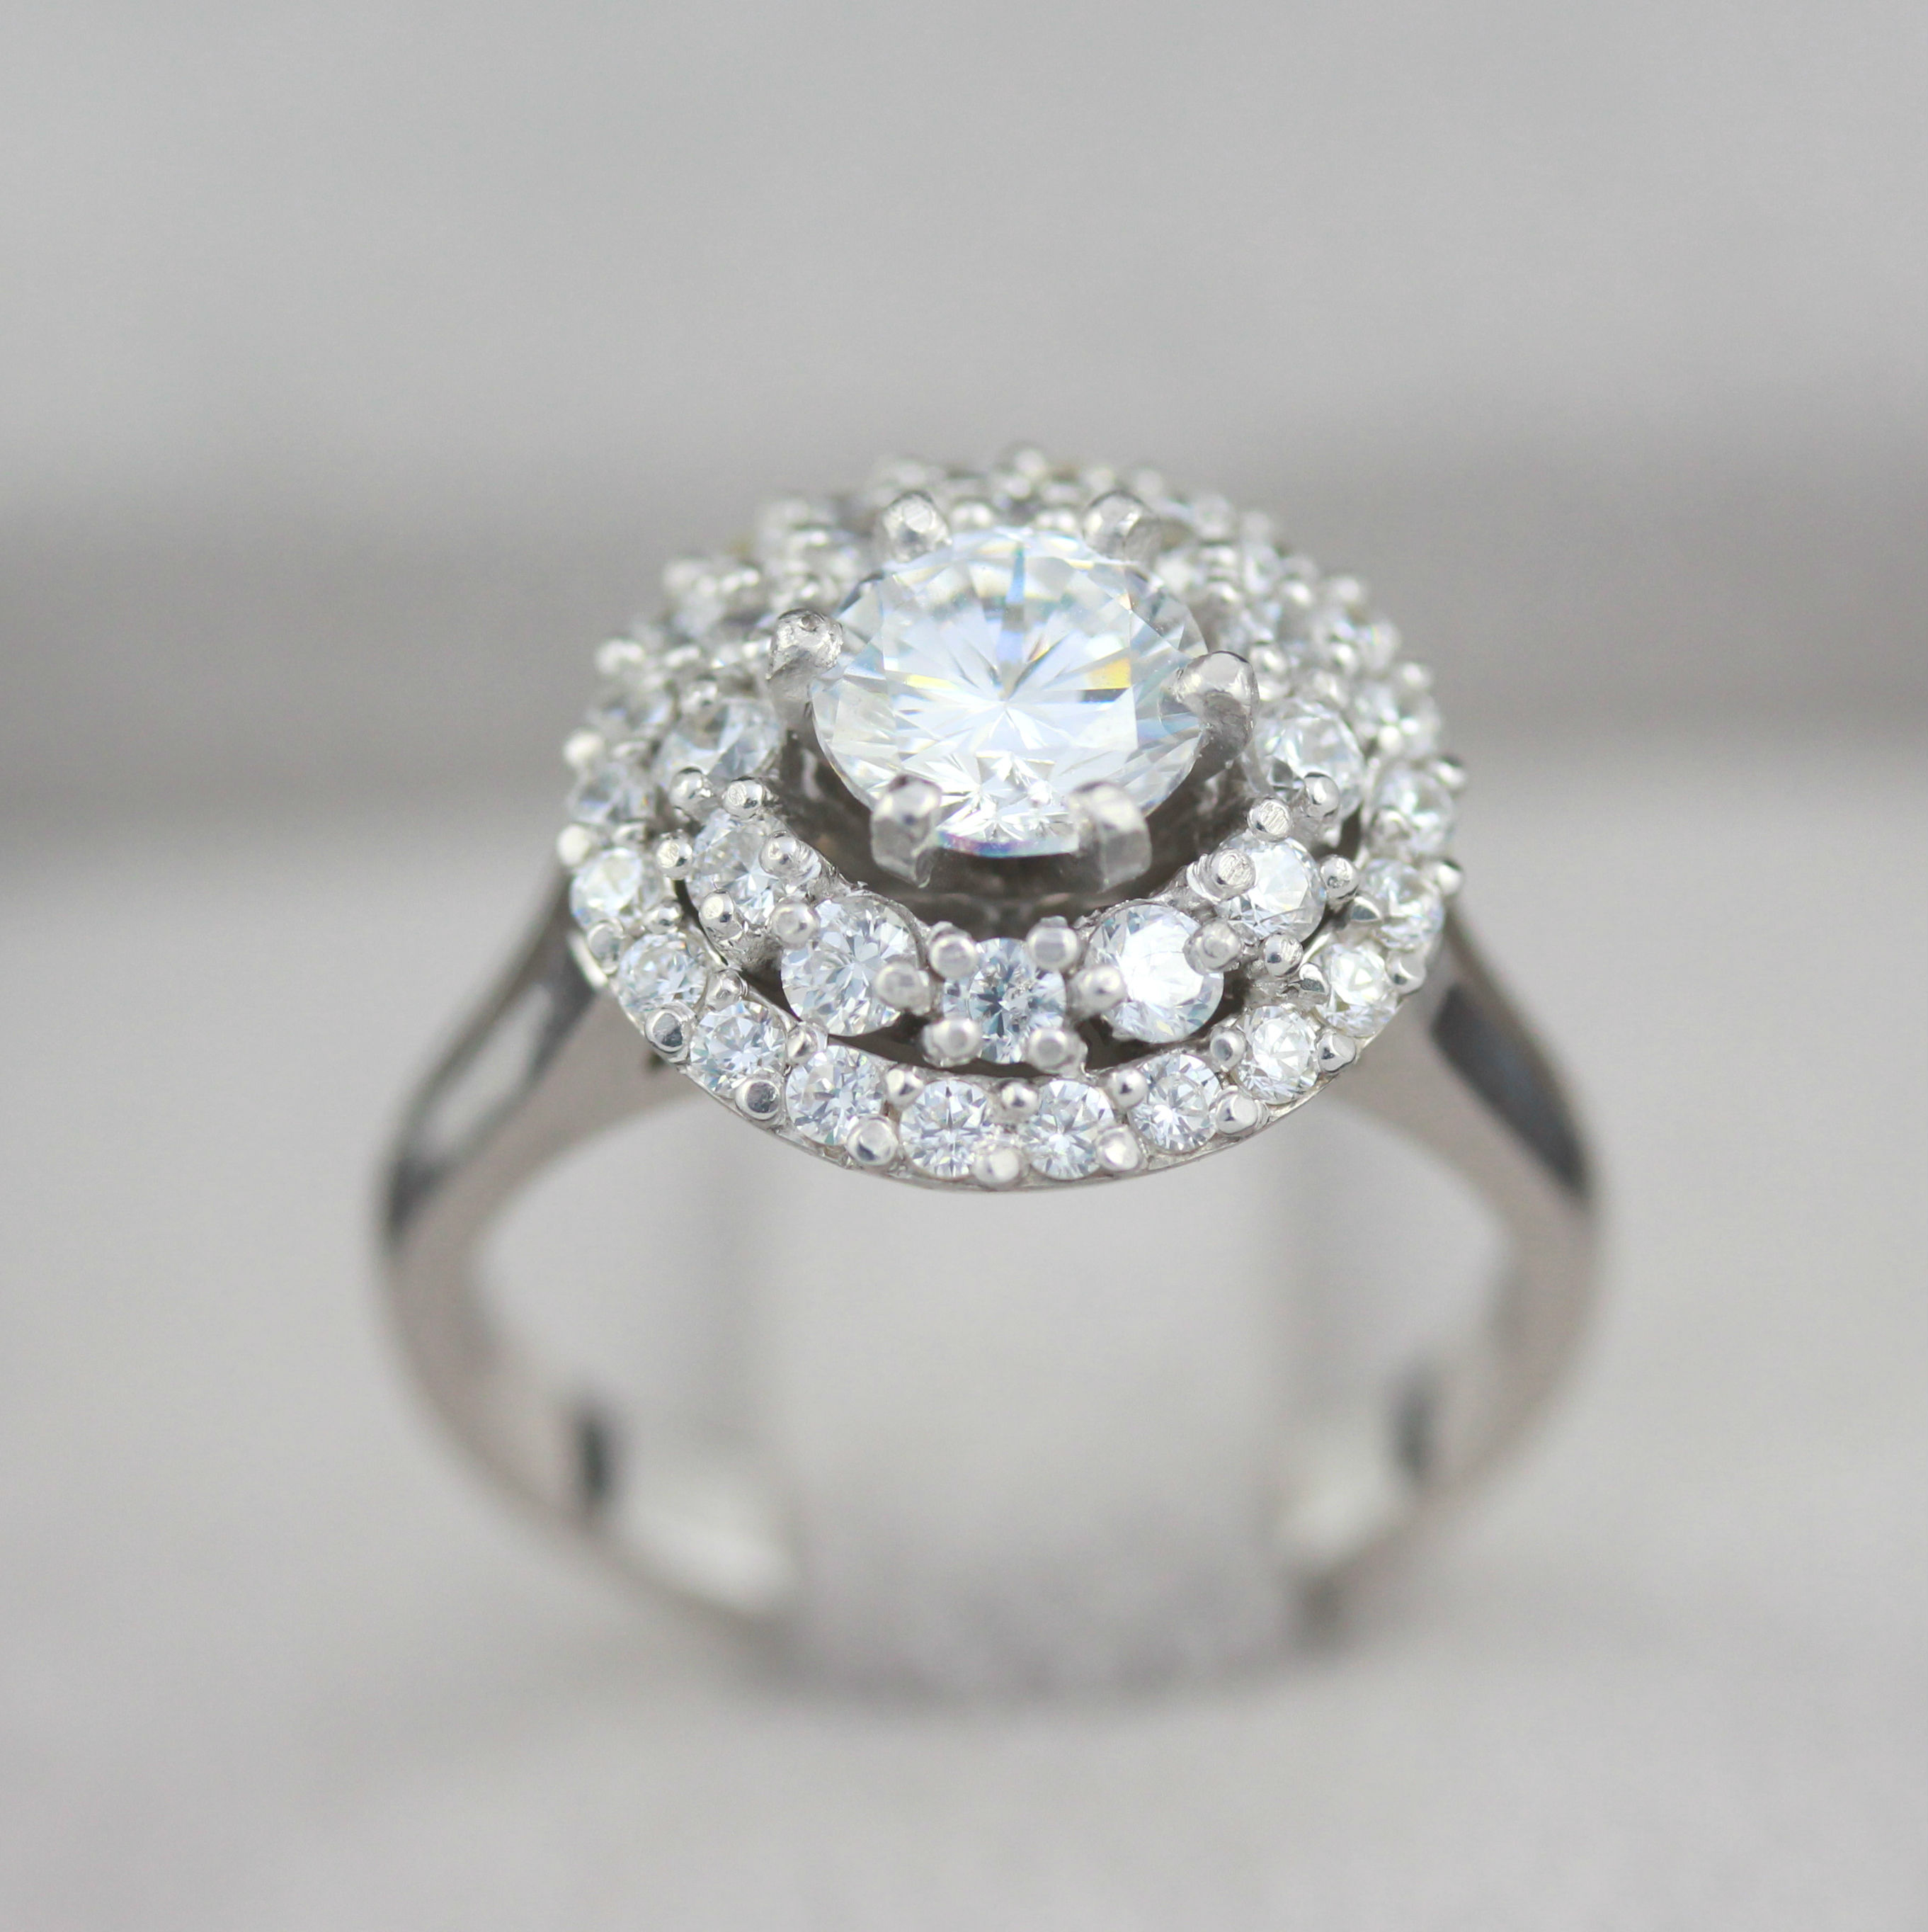 rings of right carat delicate diva diamond zeghani co with ring luxury hand white lovely tififi